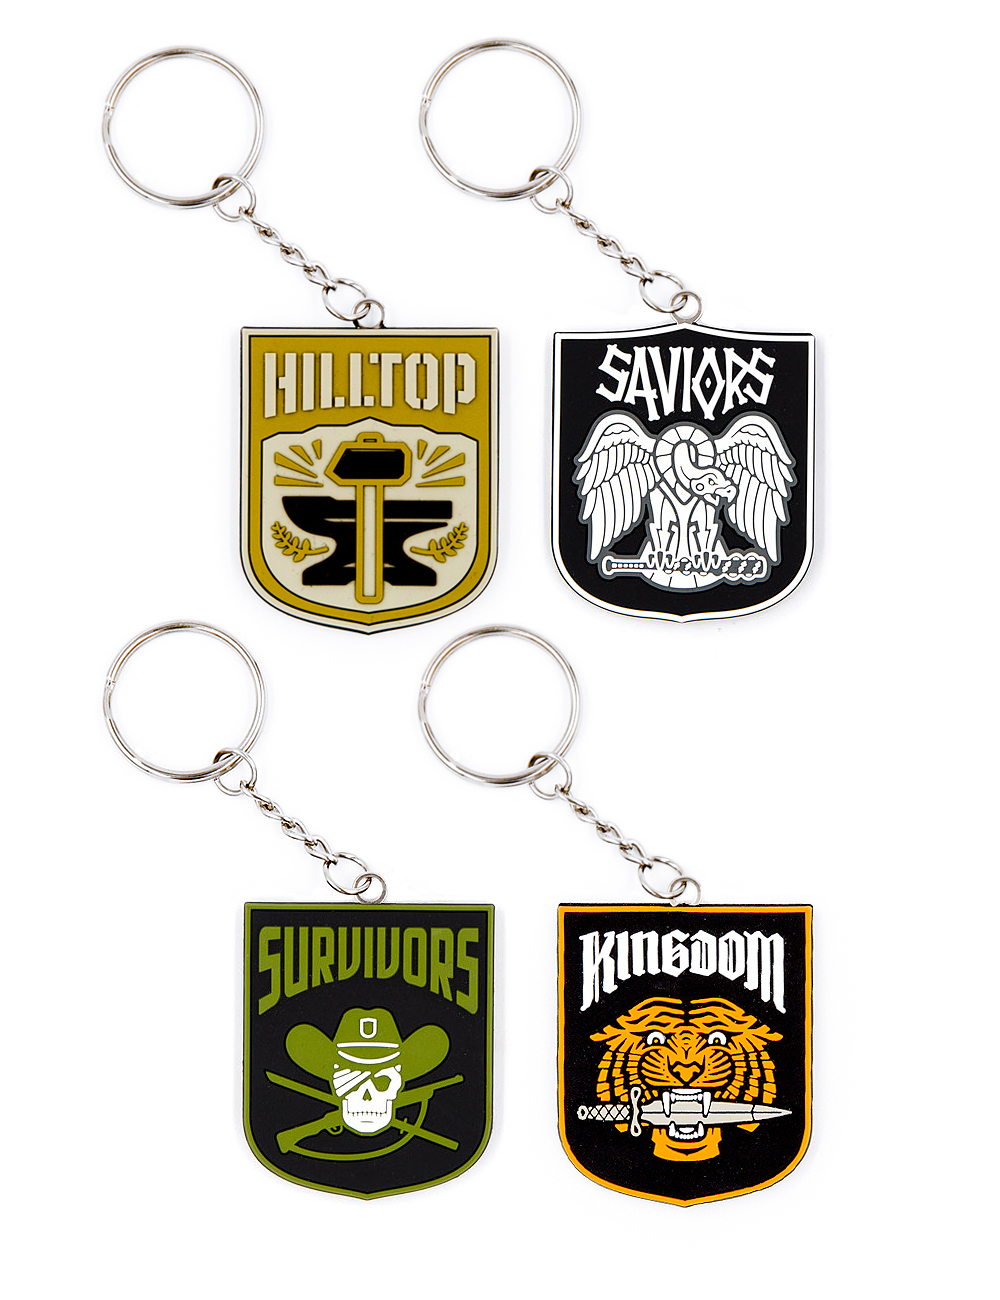 TWD_Factions_keychain.jpg